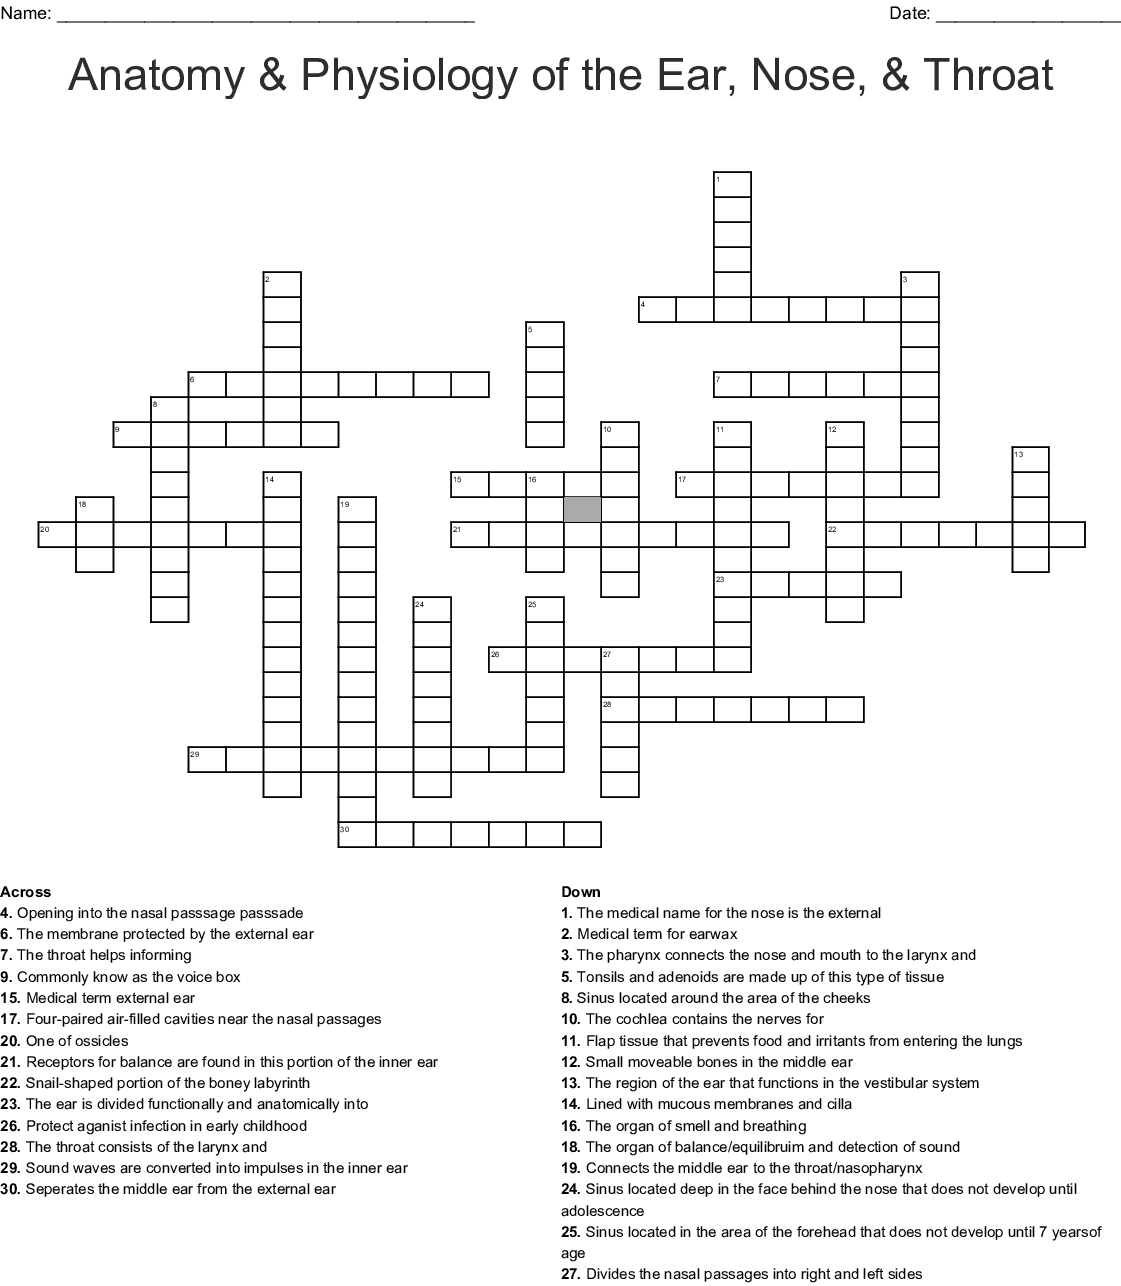 Anatomy Amp Physiology Of The Ear Nose Amp Throat Crossword